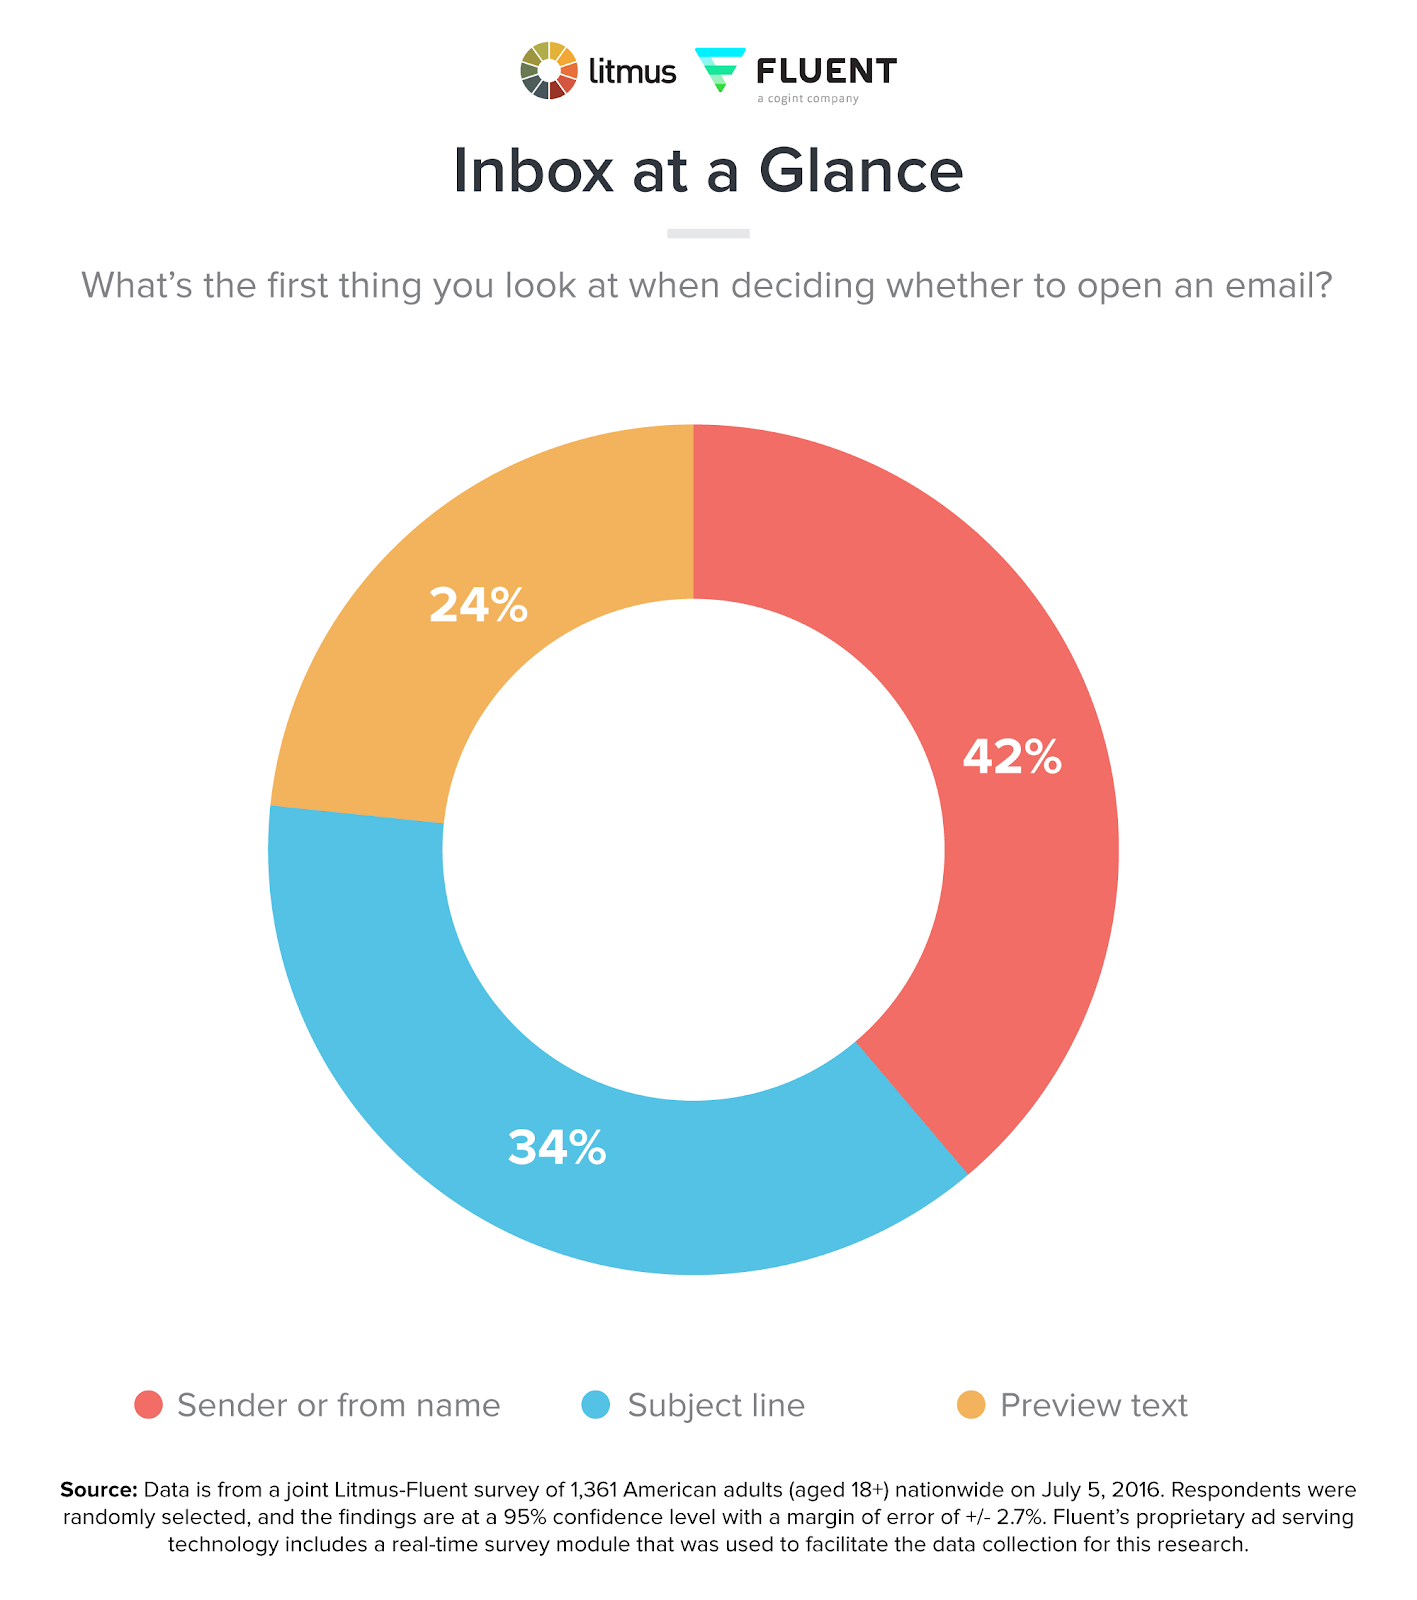 Sender or from name is the first thing looked at when deciding whether to open an email. Source